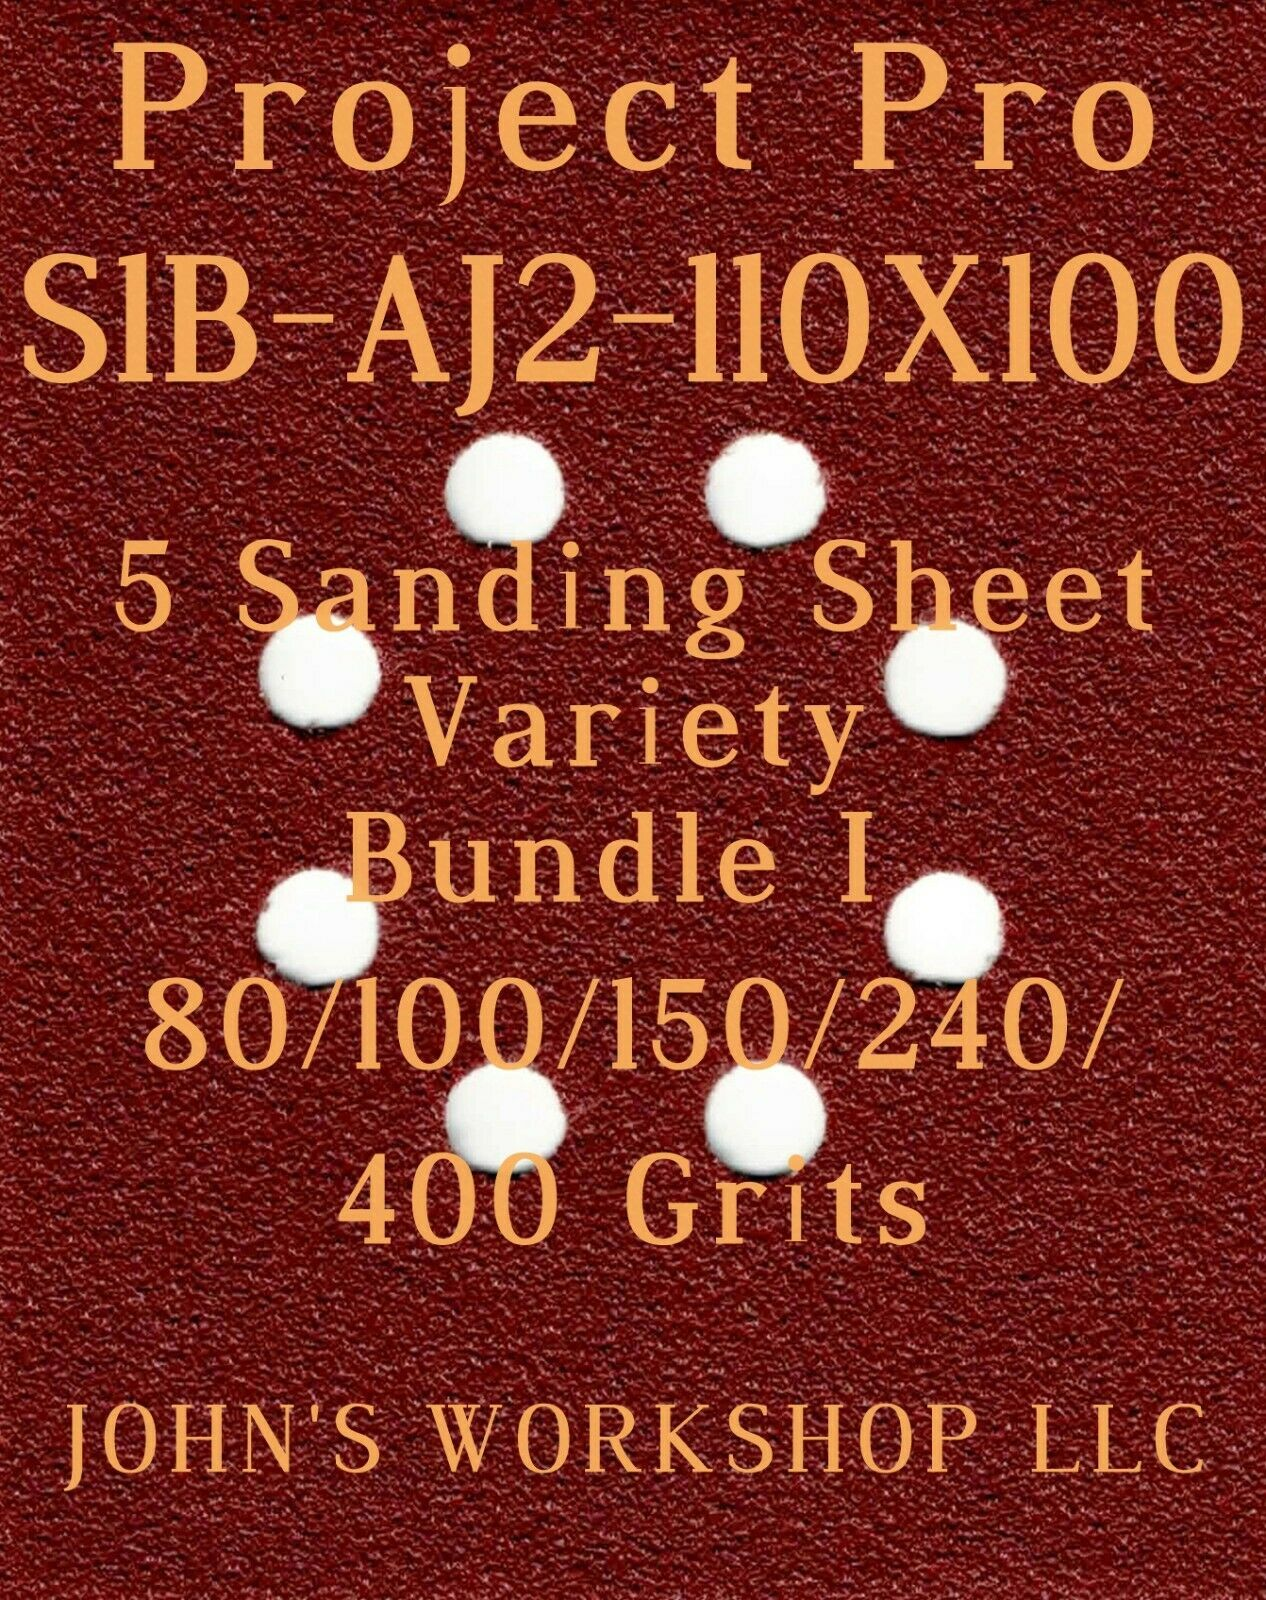 Primary image for Project Pro S1B-AJ2-110X10 - 80/100/150/240/400 Grit - 5 Sheet Variety Bundle I